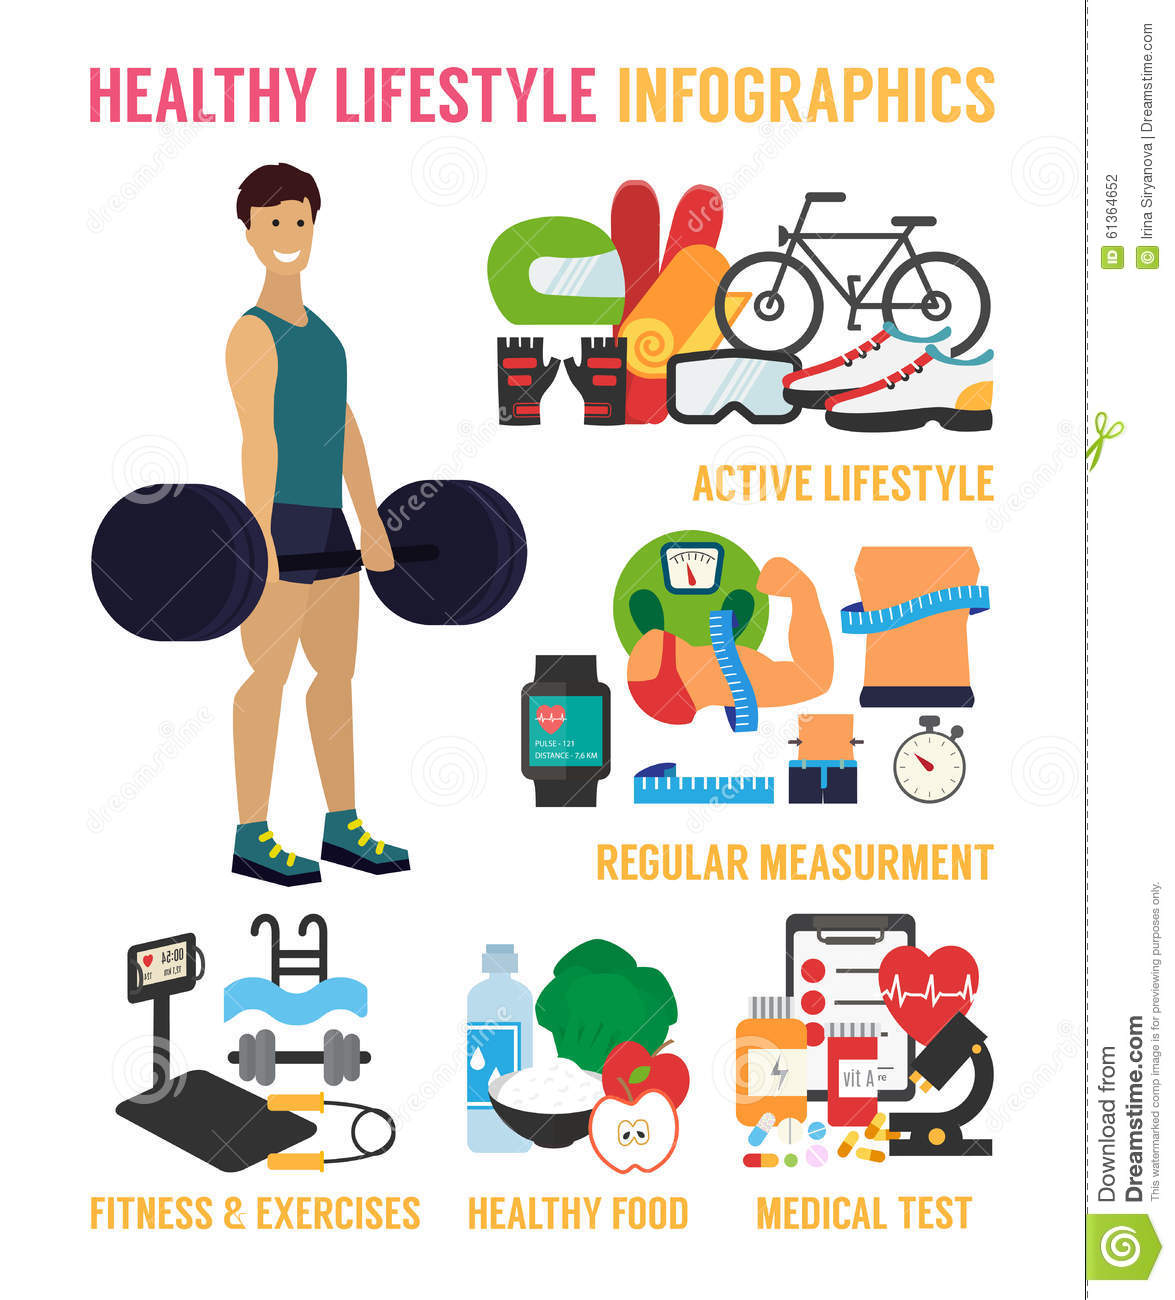 Healthy Lifestyle Vector Infographic Stock Vector